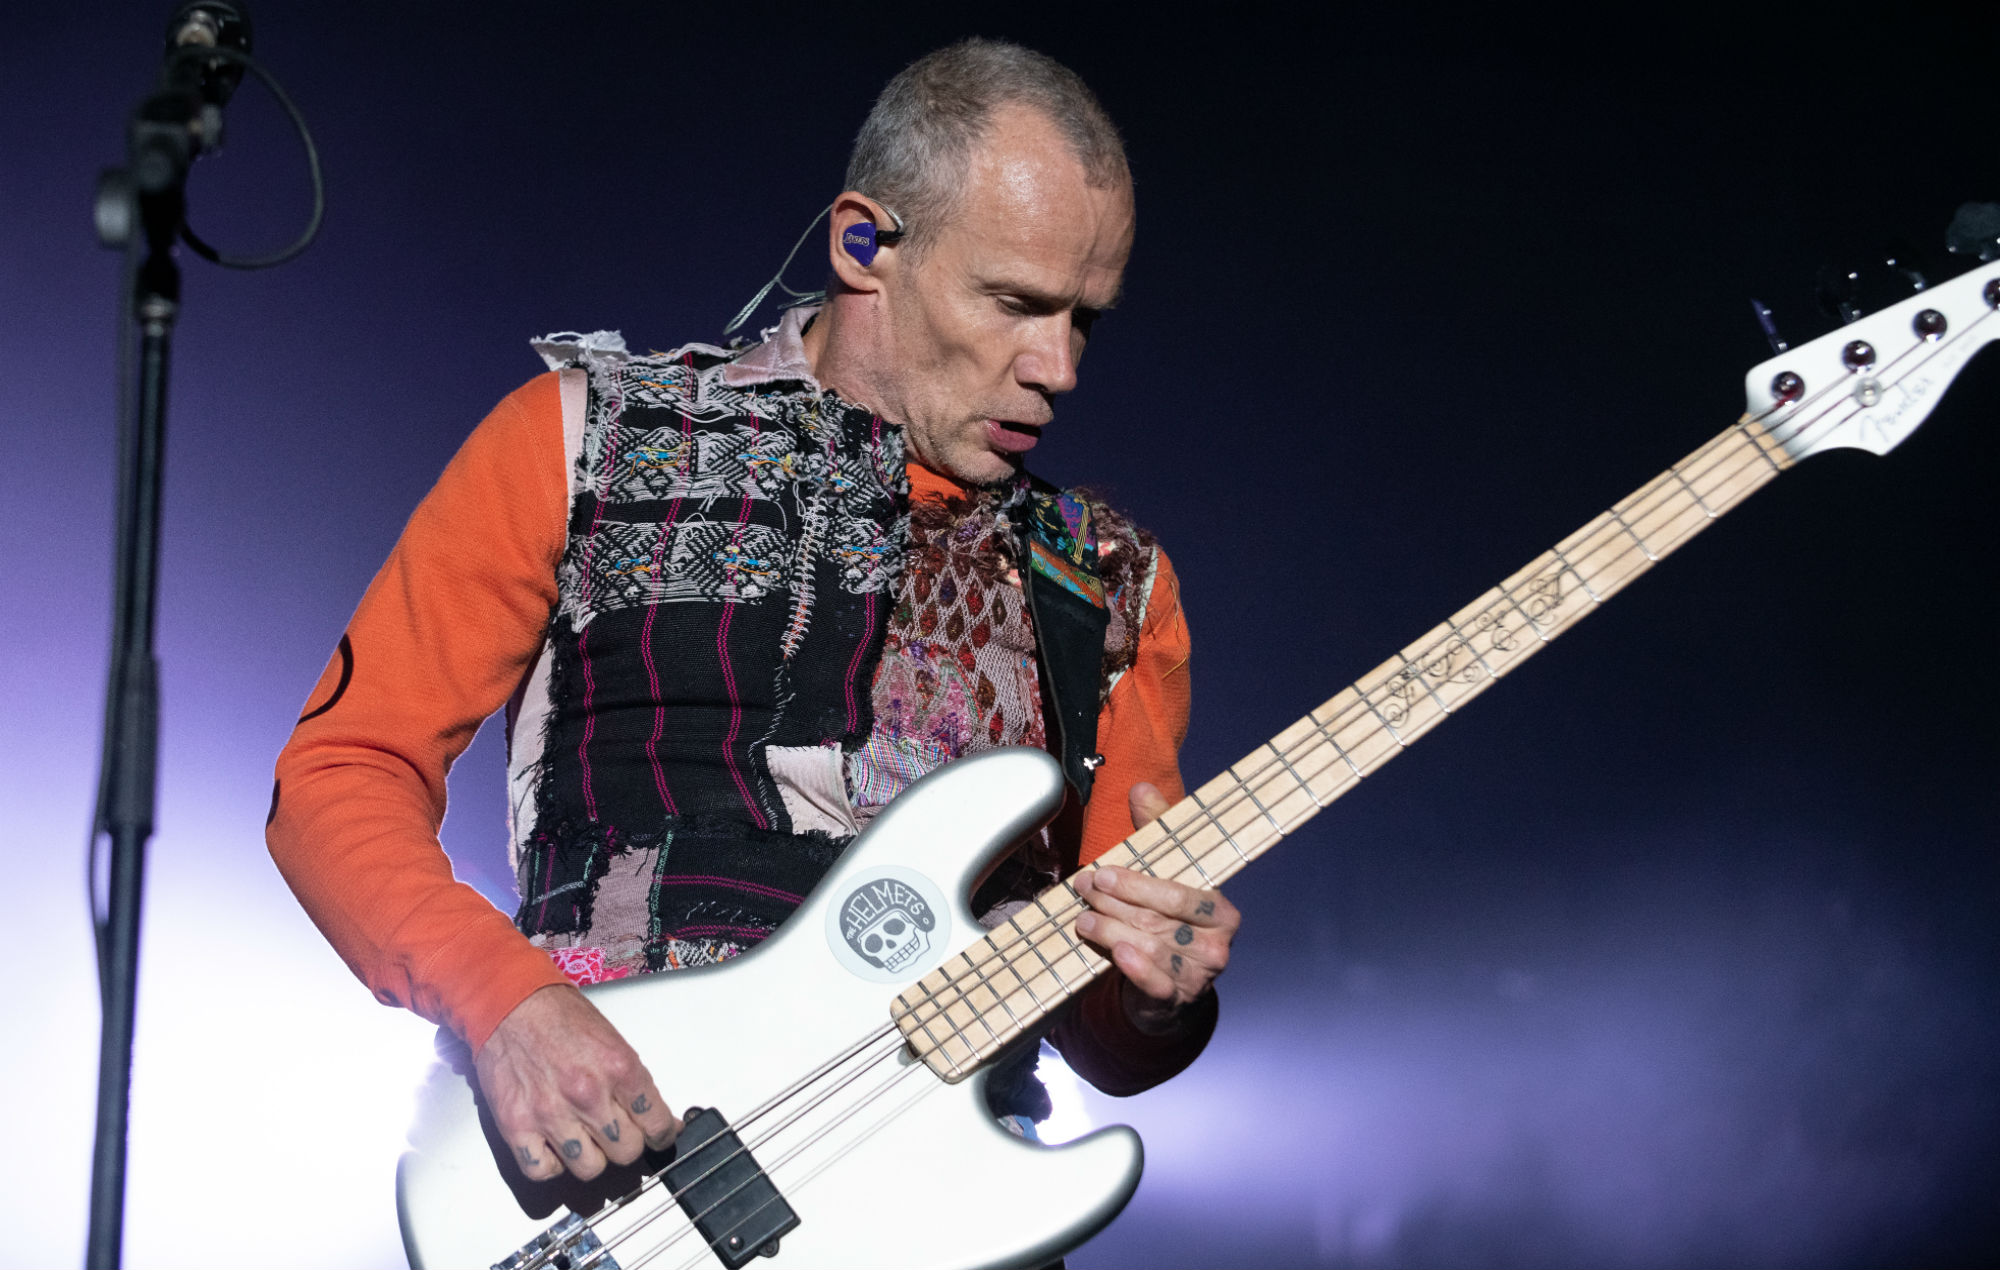 """He's looking to be the alpha"": Flea hints at conflicted relationship with Red Hot Chili Peppers' bandmate, Anthony Kiedis"